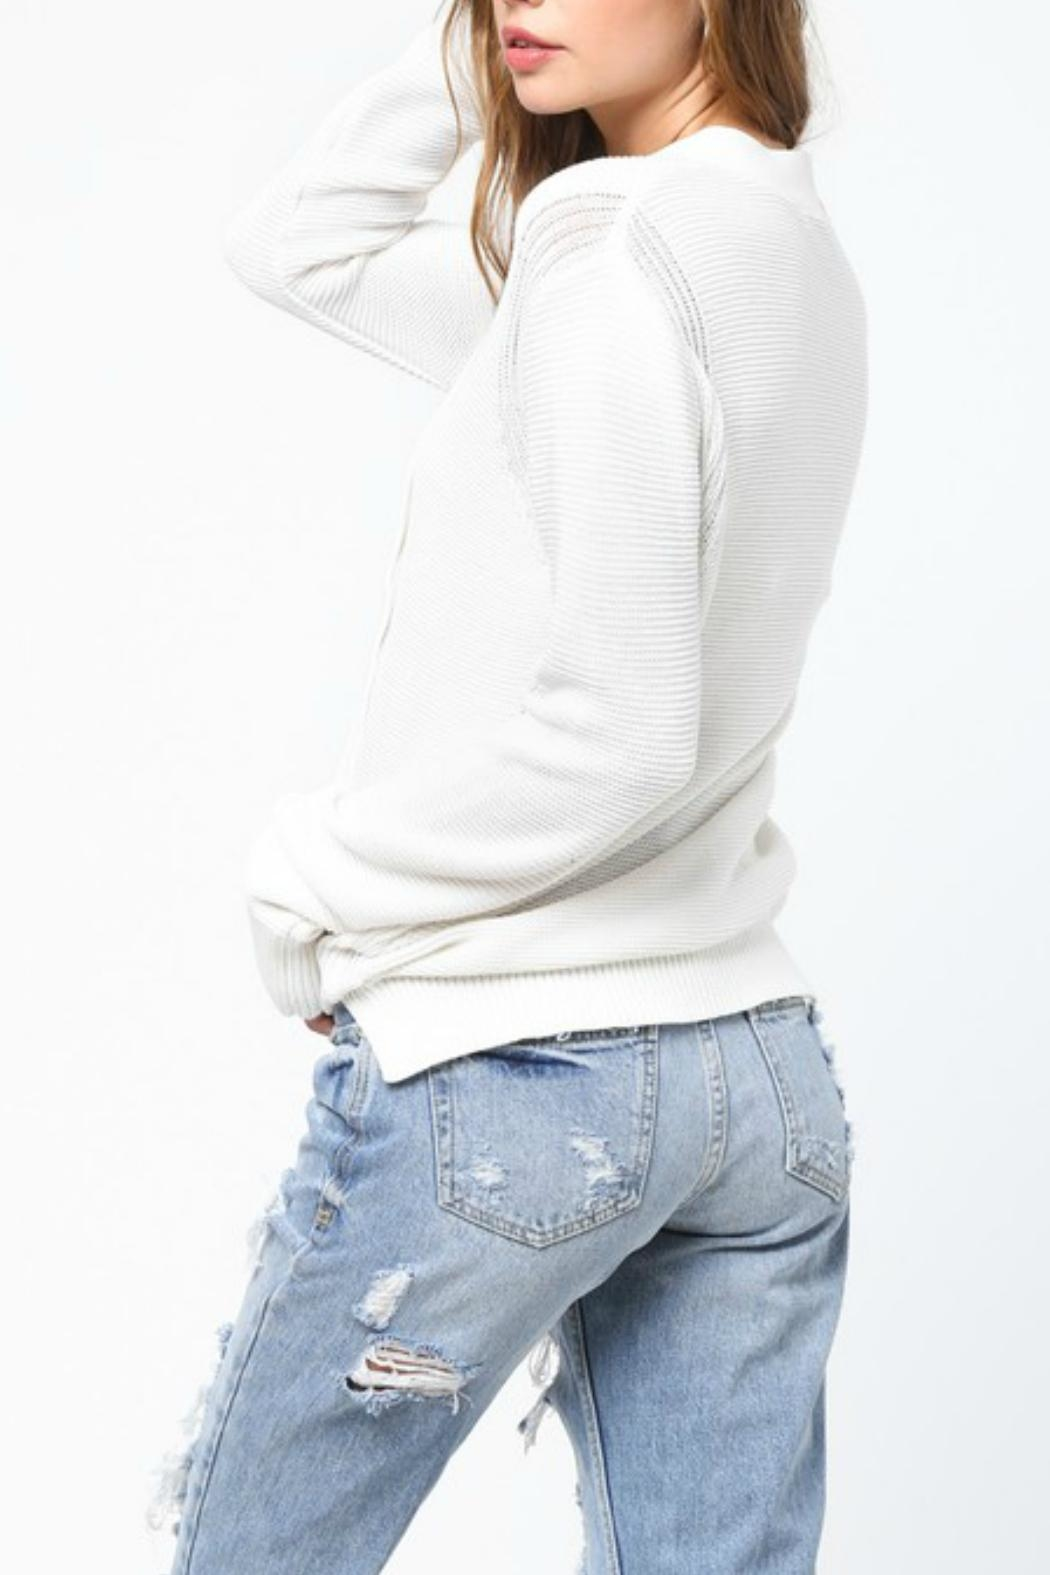 Very J Cream Lace Up Sweater - Front Full Image